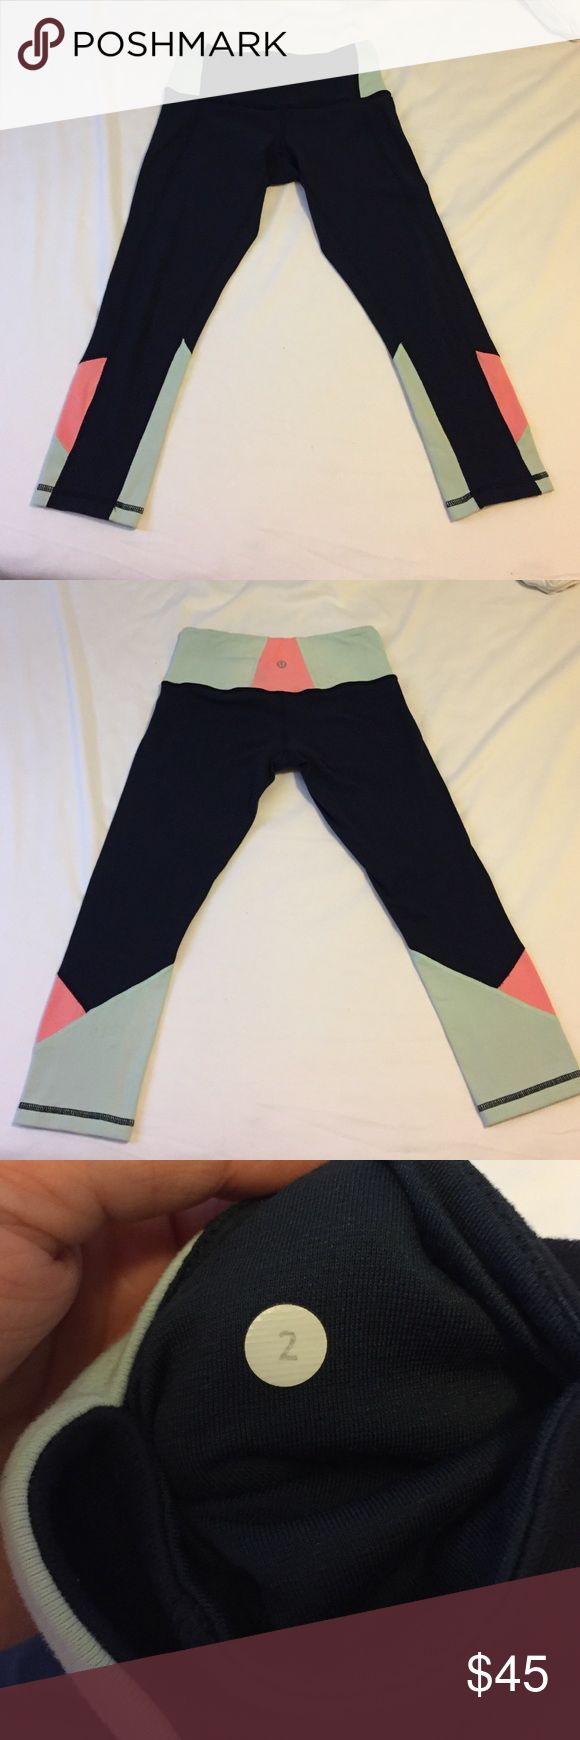 🔸1 HOUR SALE🔸Navy LuluLemon Leggings Navy, mint and peach colored LuluLemon leggings. Size 2 in good condition! Slight wear on the crotch region but other than that no issues :) cheaper on merc. lululemon athletica Pants Leggings